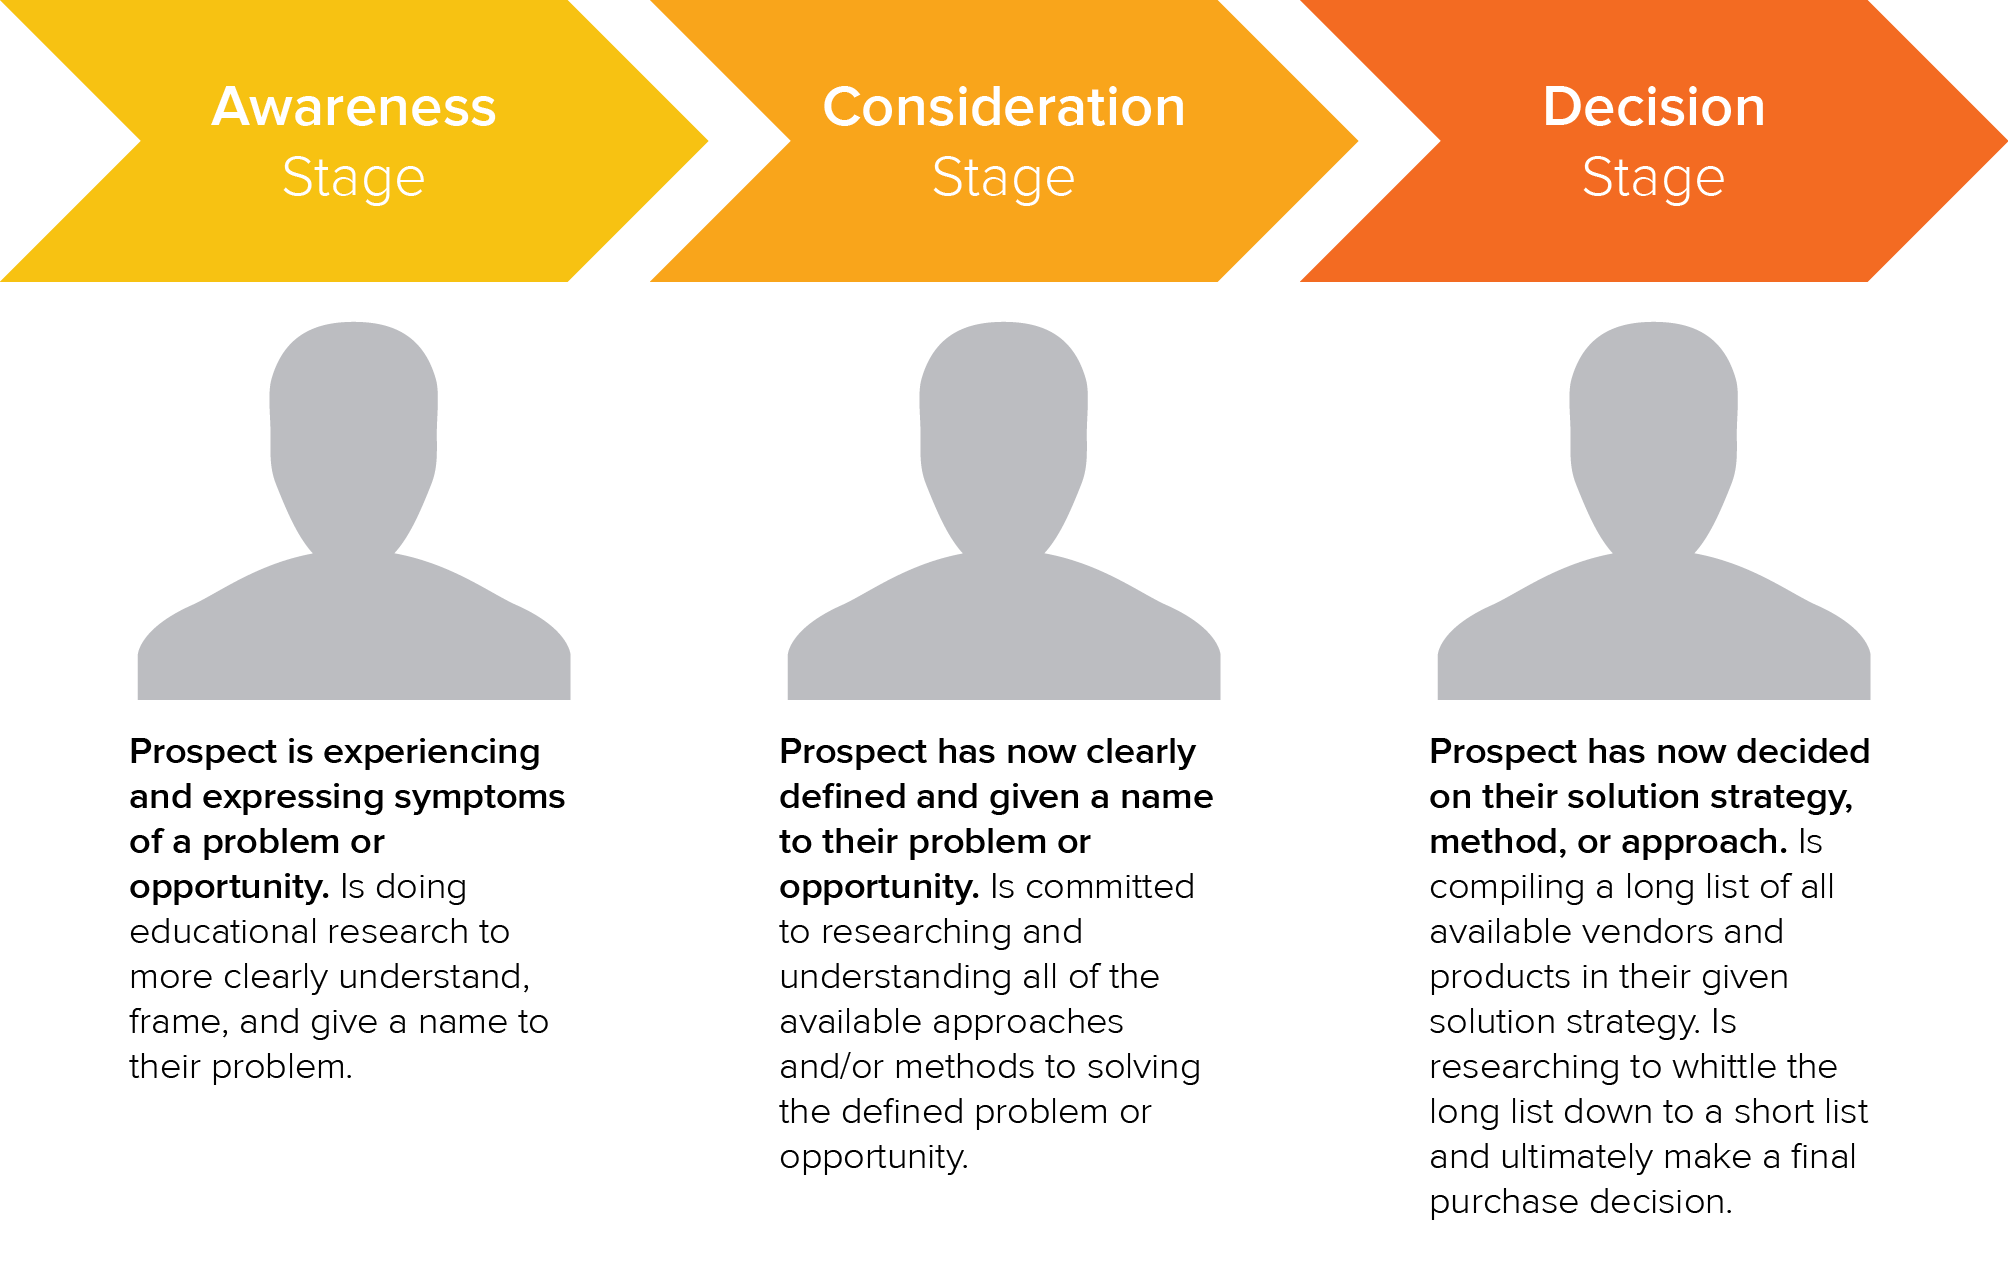 The buyer's journey: awareness stage, consideration stage, decision stage